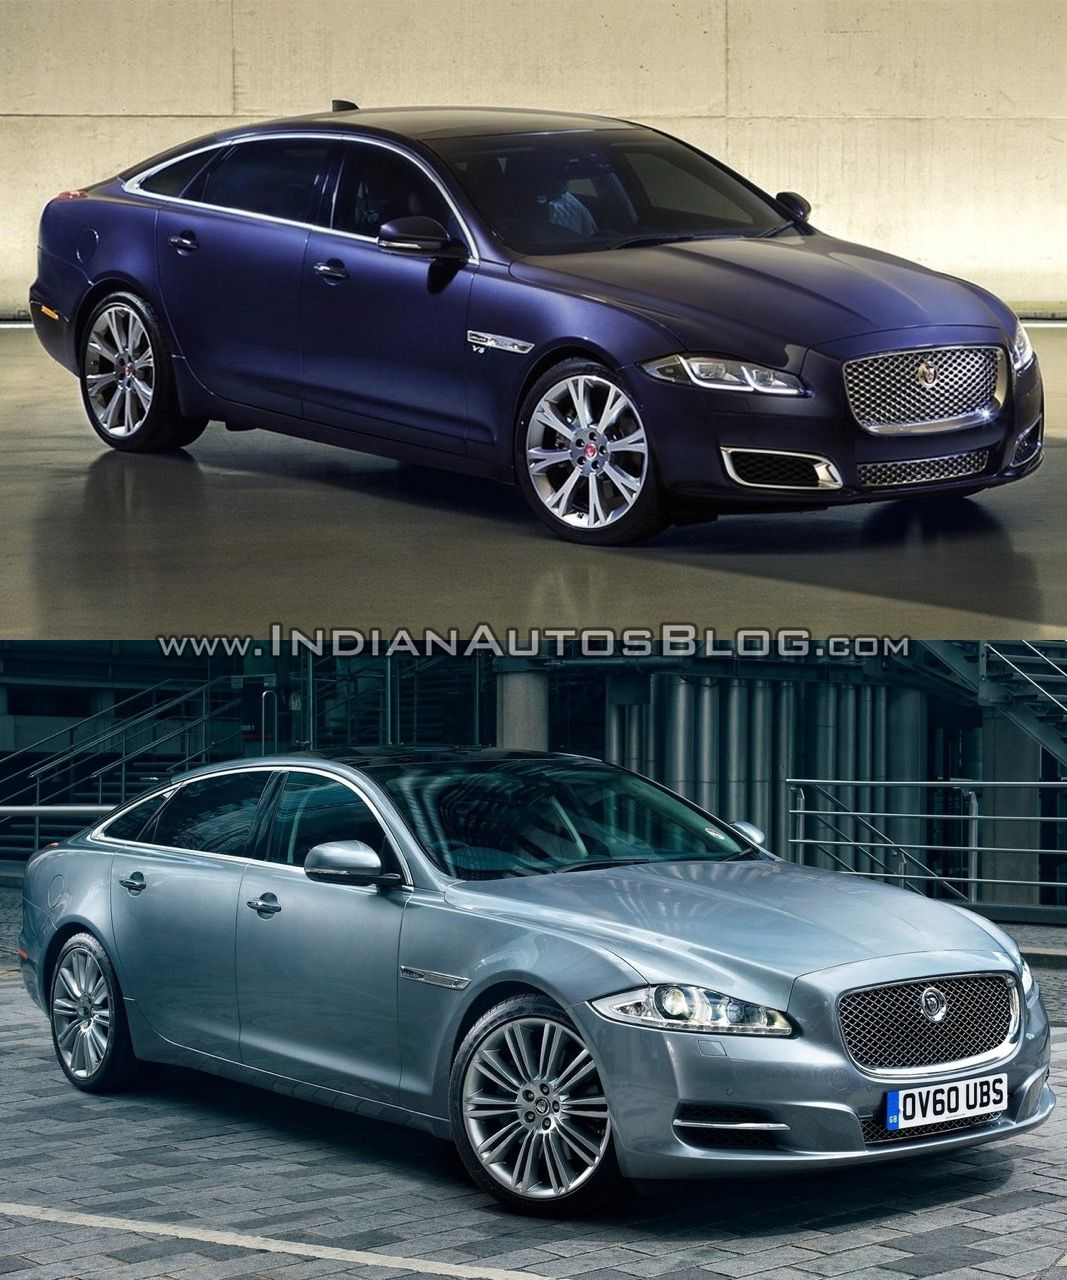 Price Of Jaguar Convertible: 2016 Jaguar XJ Vs 2014 Jaguar XJ - Old Vs New